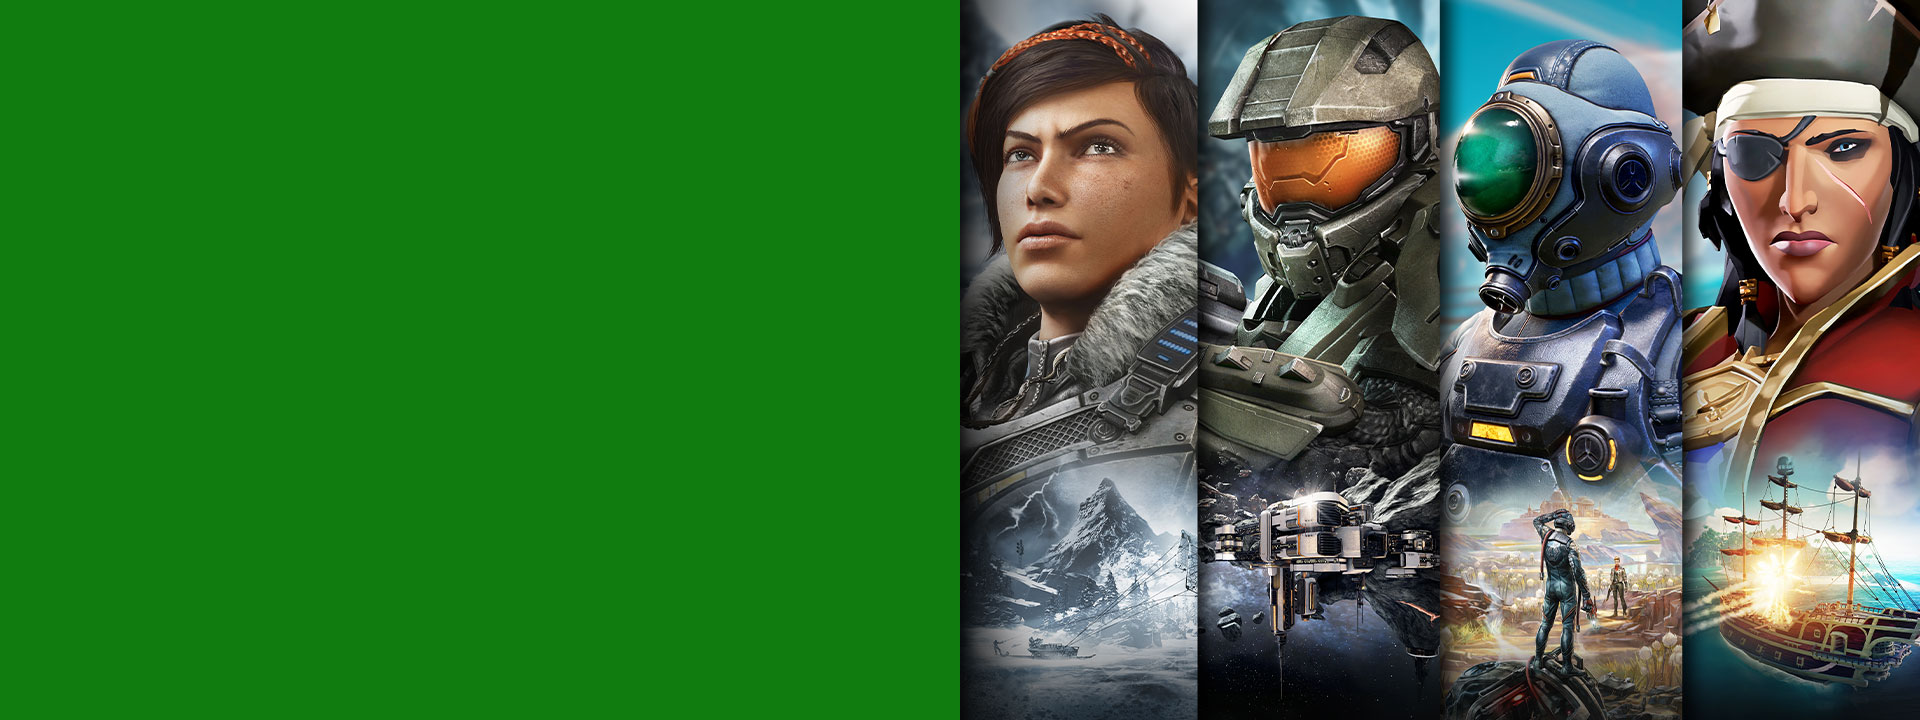 Xbox Game Pass-gamepersonages uit Gears 5, Halo, The Outer Worlds en Sea of Thieves.